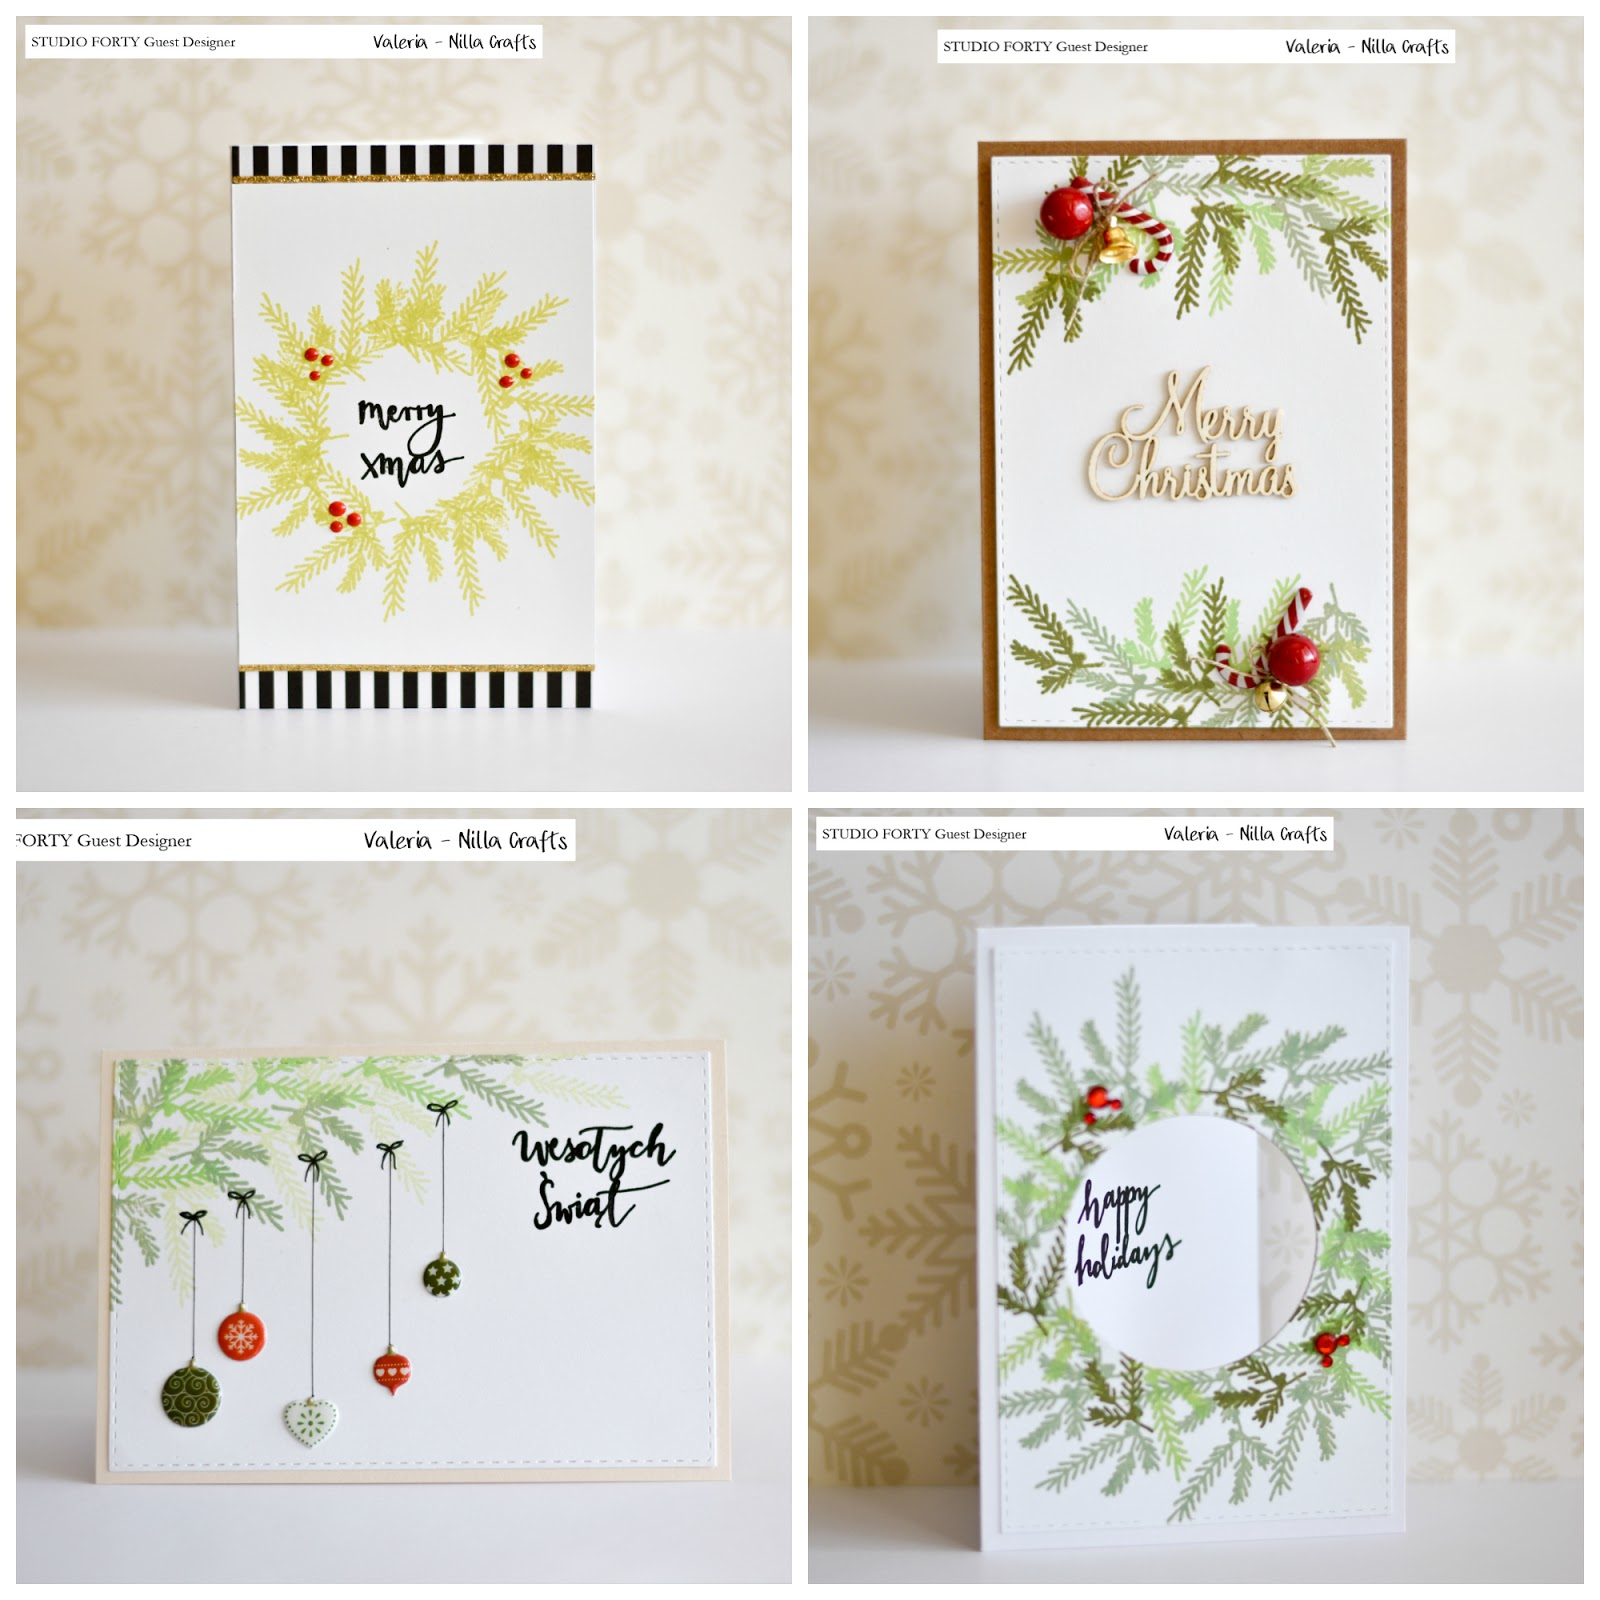 Studioforty Christmas Cards With Valeria